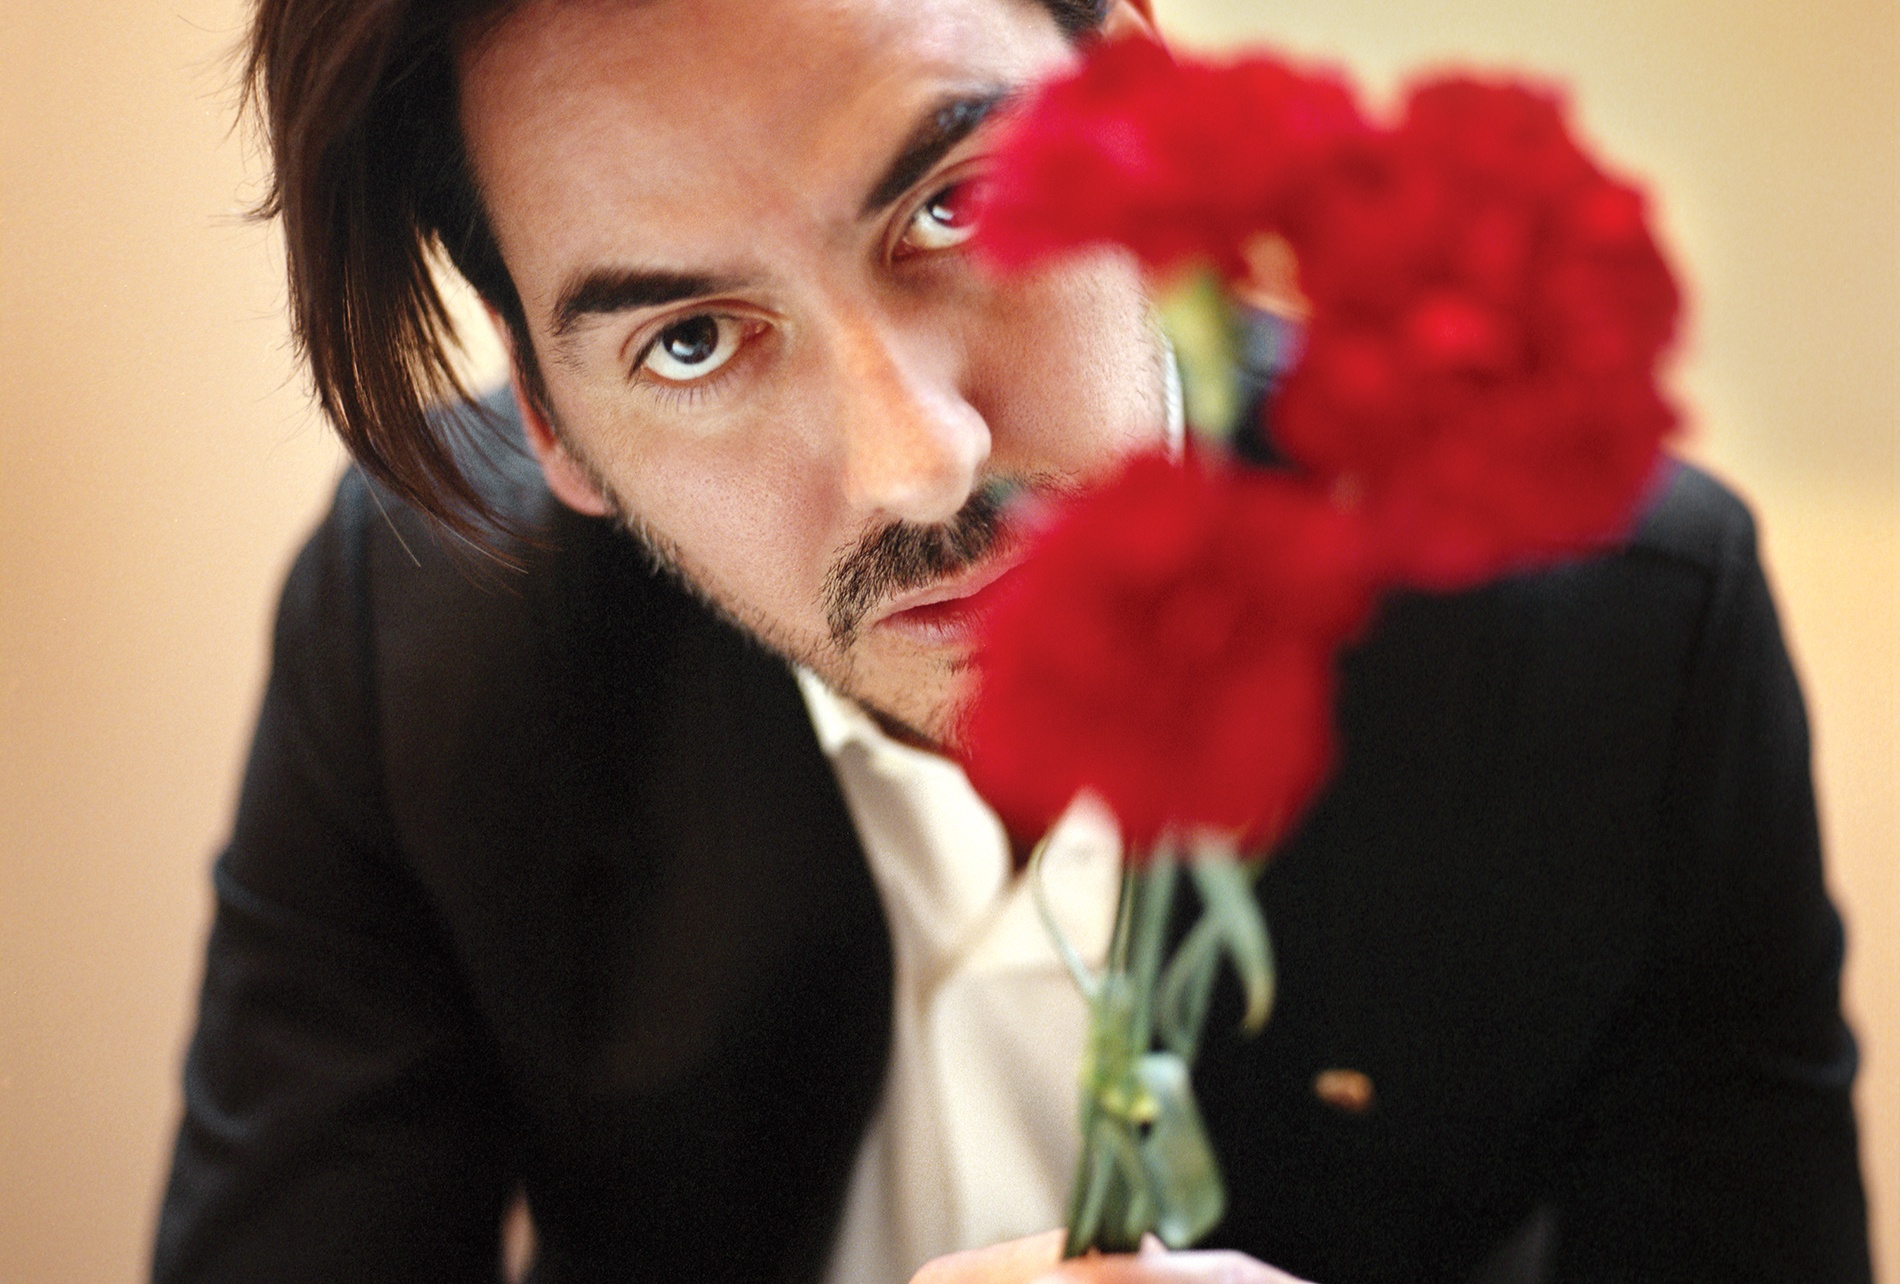 Image of Dhani Harrison '01 in a black suit and white shirt, face partially obscured behind bright red flowers.